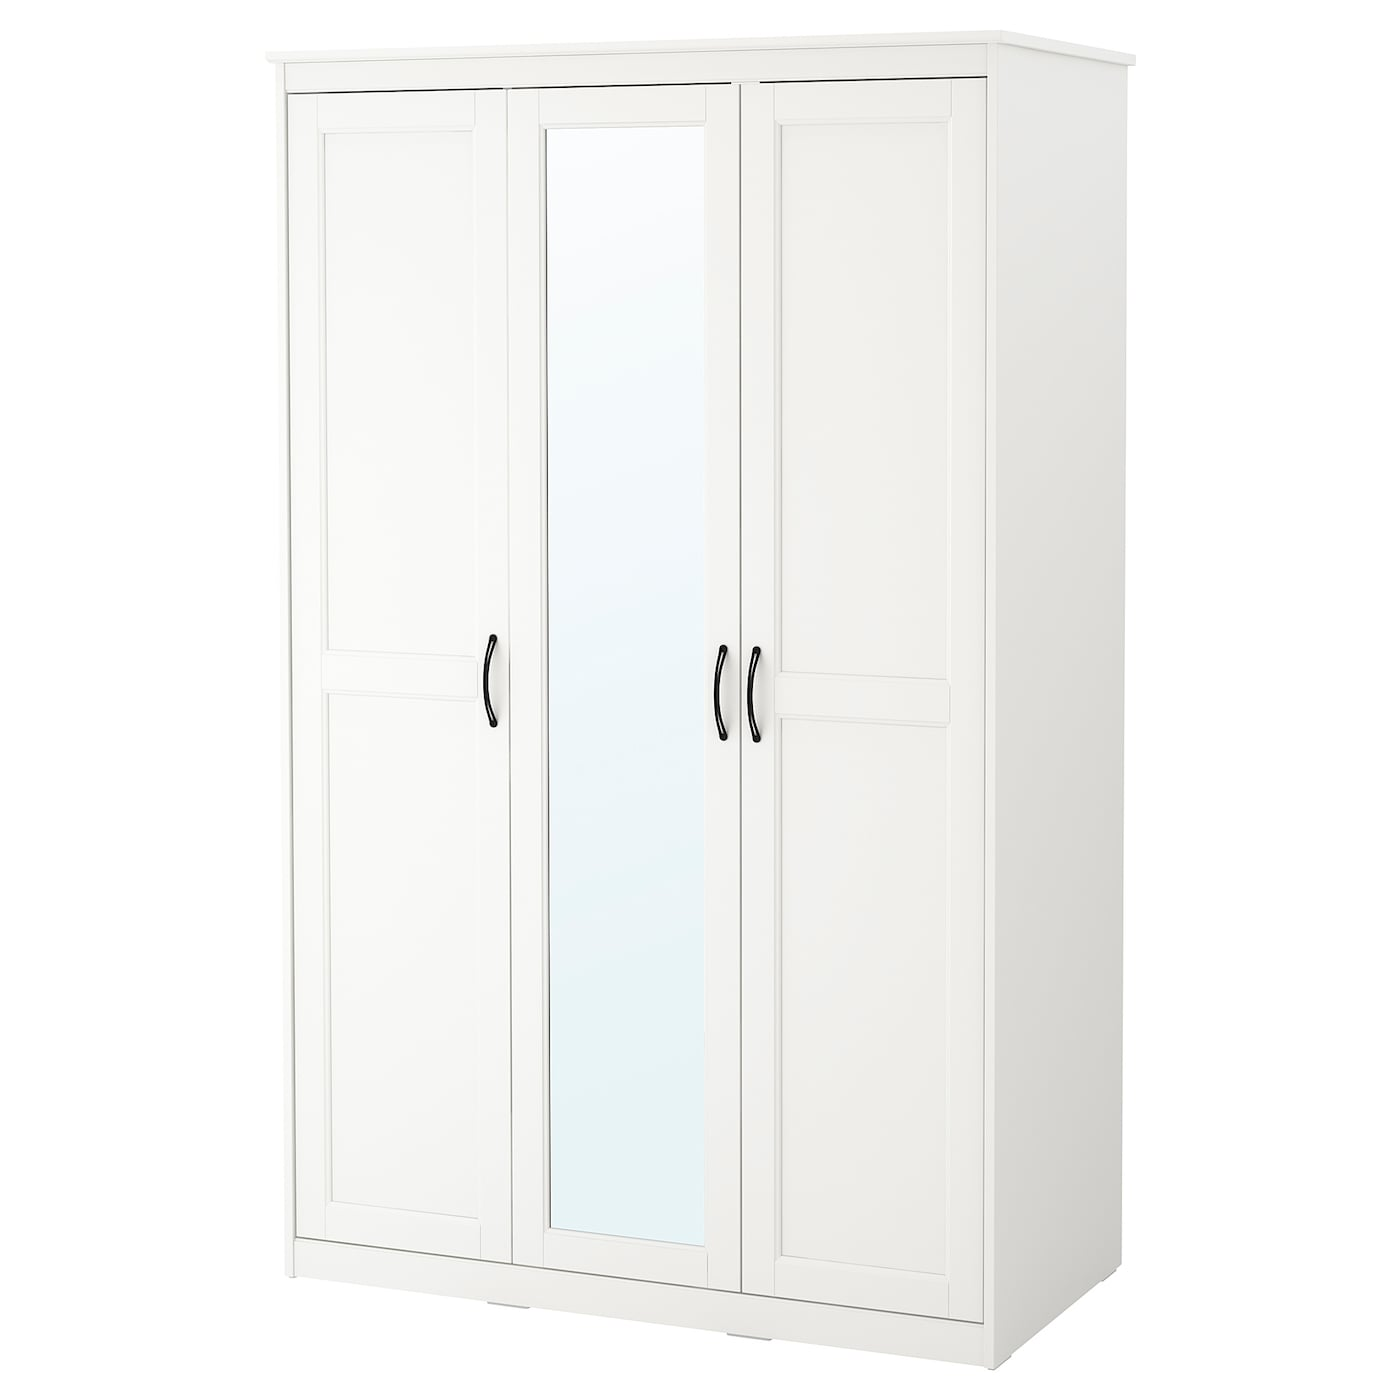 songesand wardrobe white 120 x 60 x 191 cm ikea. Black Bedroom Furniture Sets. Home Design Ideas